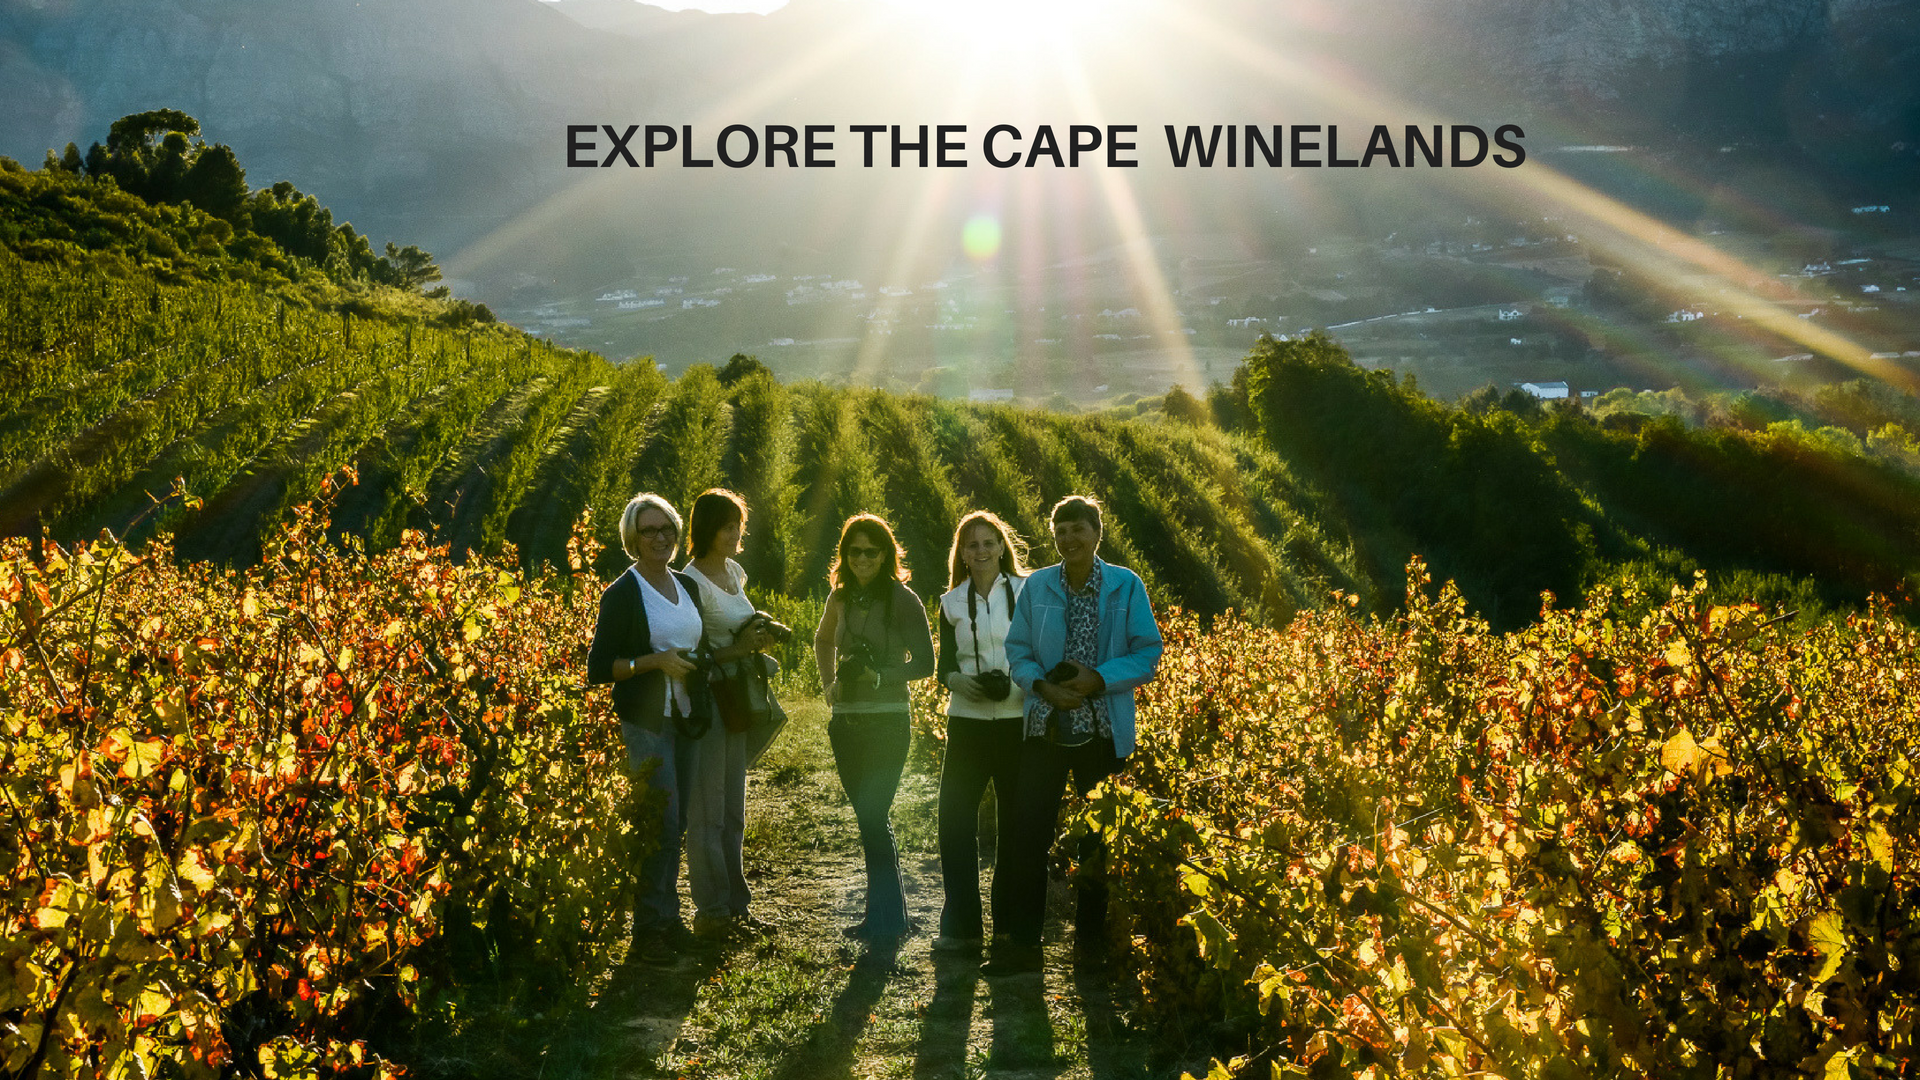 CAPE WINELANDS – we offer Cape add-on's to this Tour